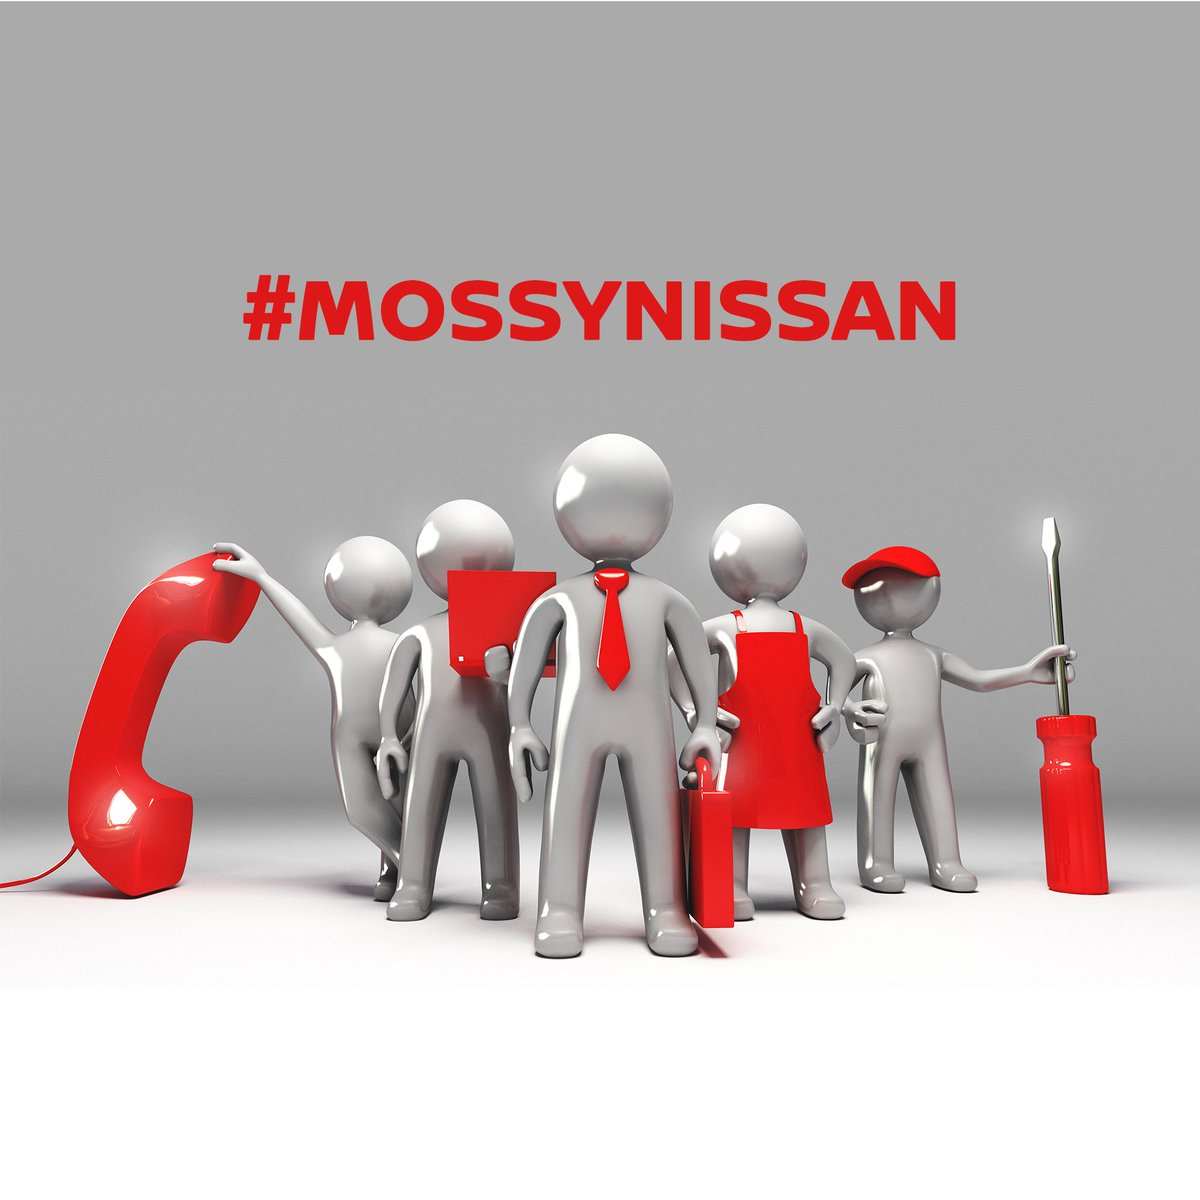 Mossy Nissan Chula Vista >> Mossy Nissan On Twitter Showin Some Love Mossy Nissan